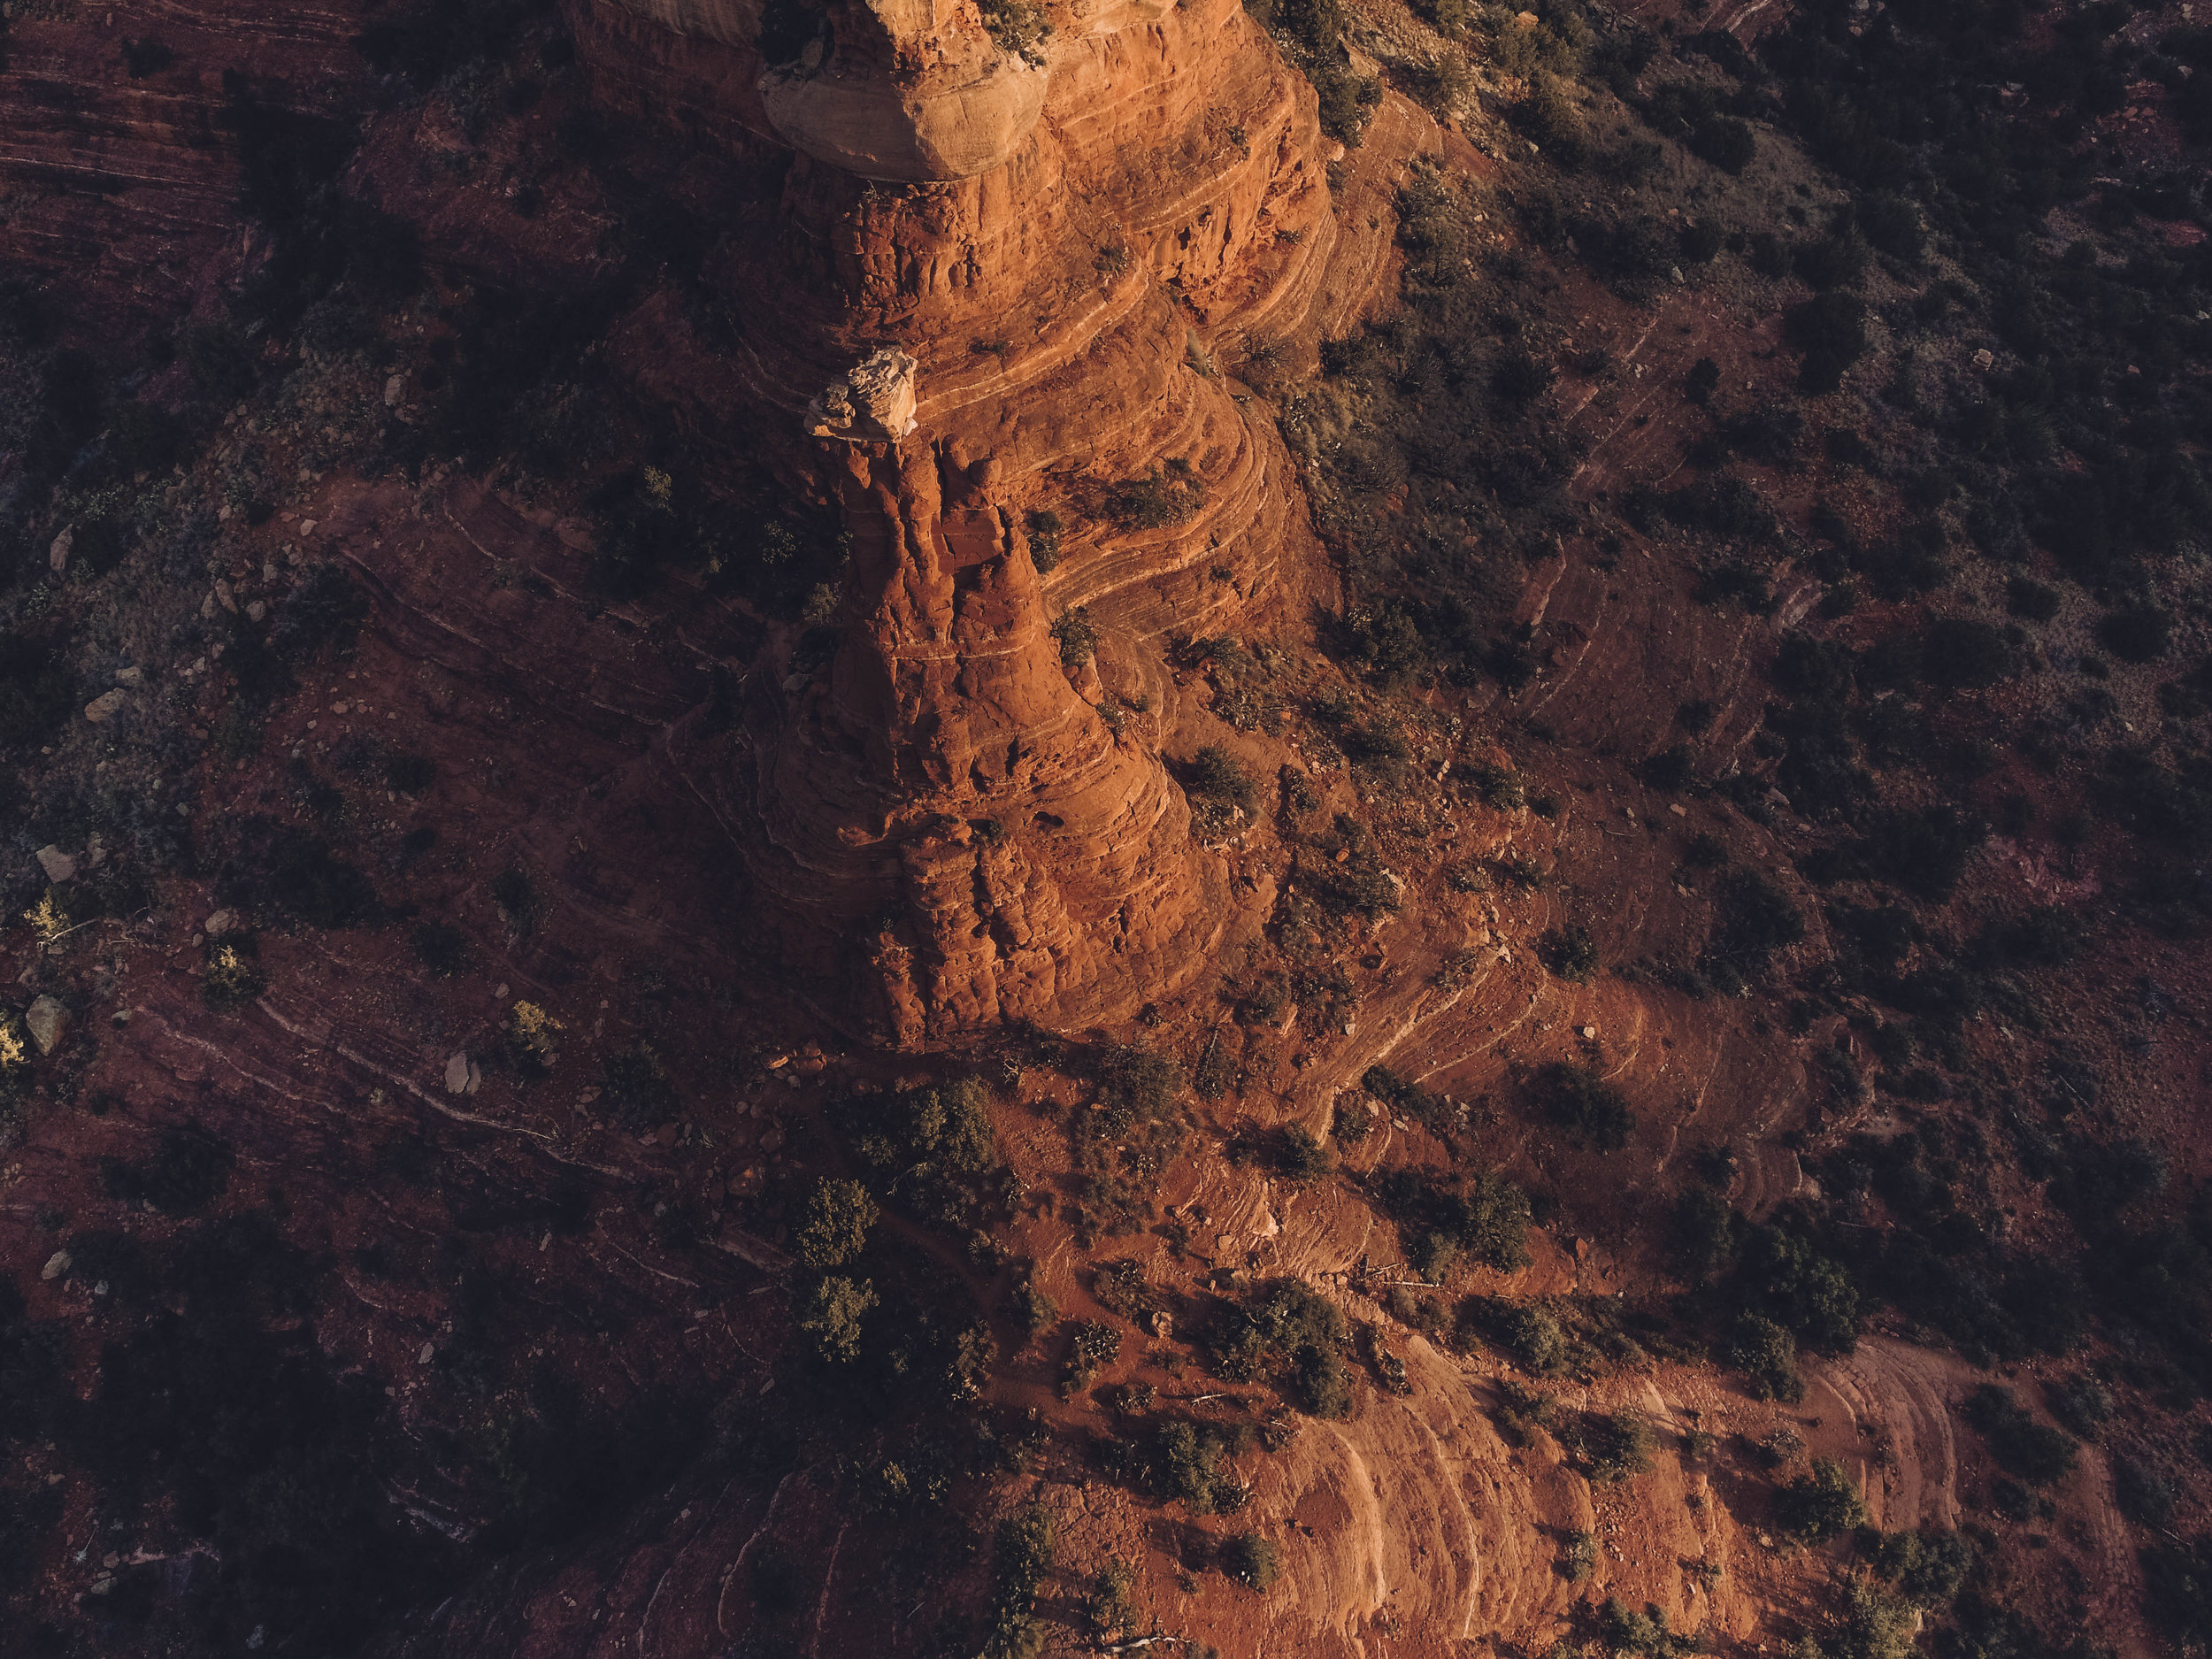 abovecanyon2 (1 of 1).jpg